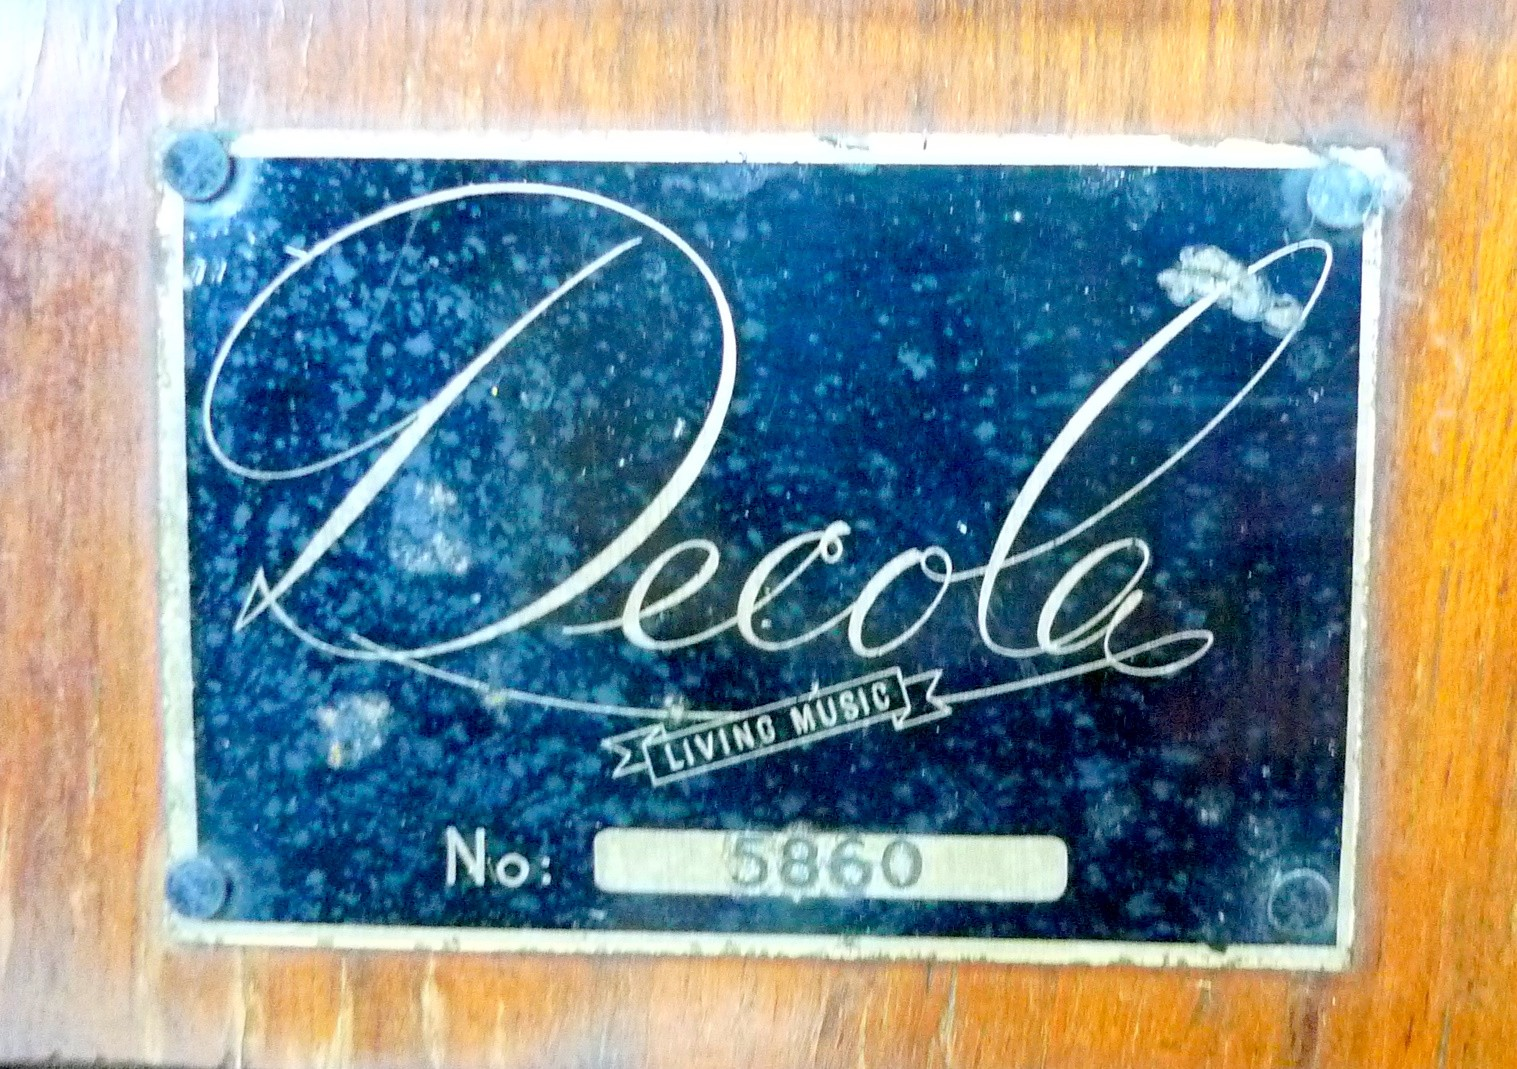 A vintage 'Decola' radiogram, by The Decca Record Company Limited, Rd. Desn. 844055, 'Decola' No. - Image 7 of 9